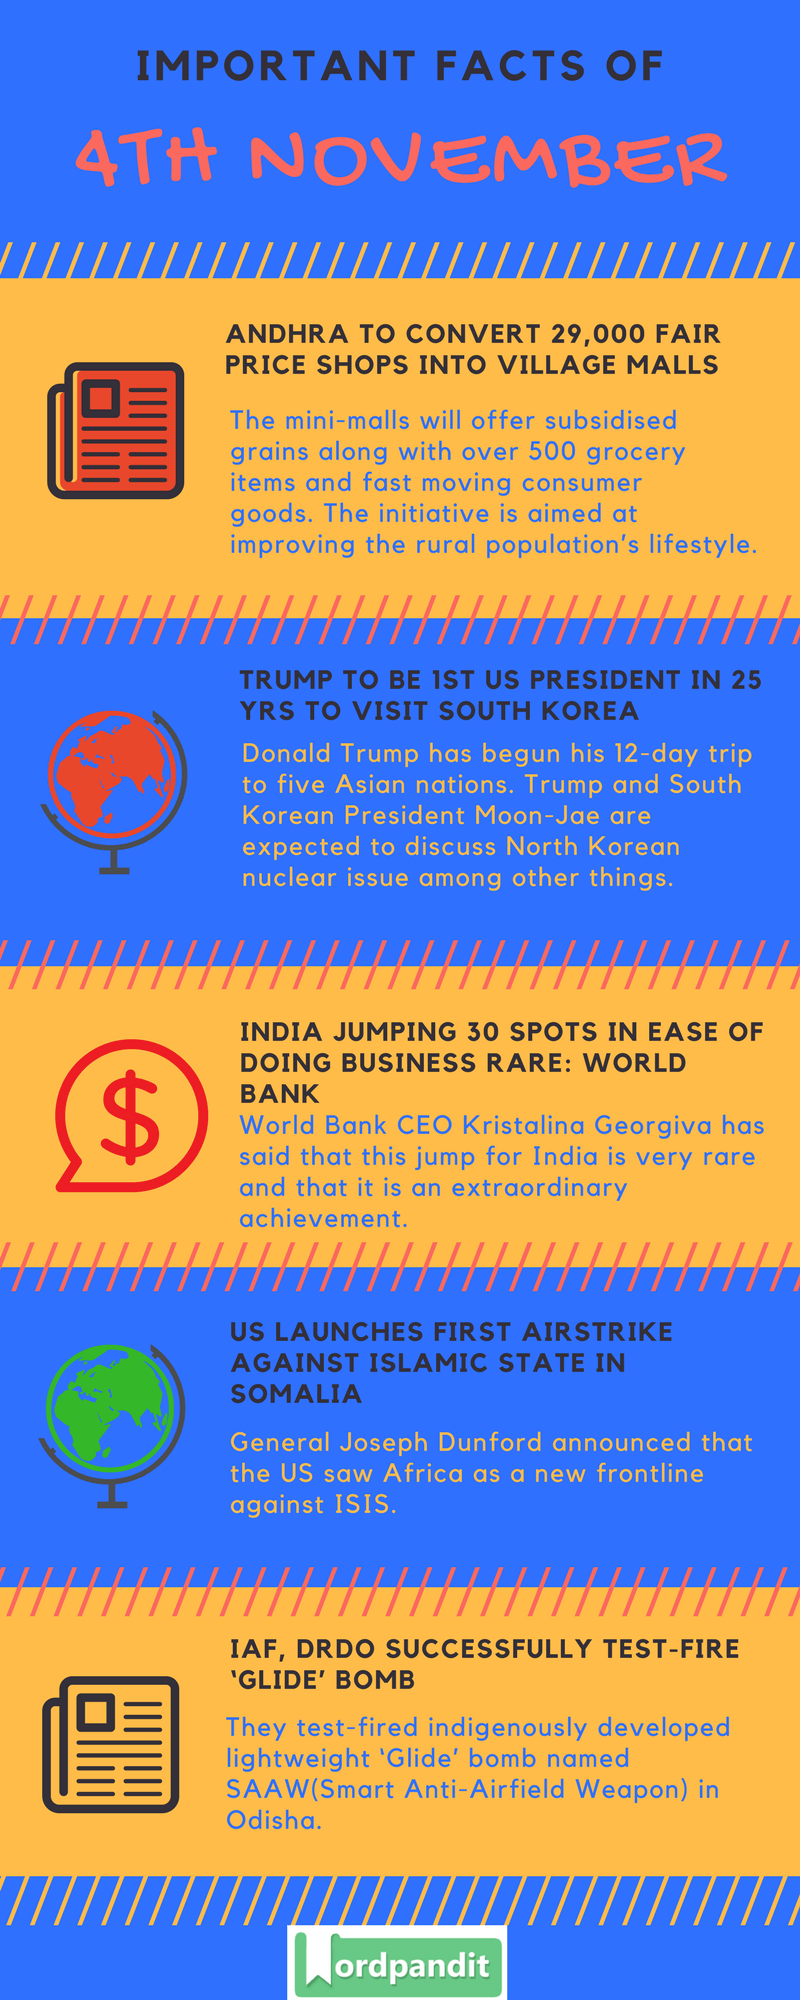 Daily-Current-Affairs-4-november-2017-Current-Affairs-Quiz-october-24-2017-Current-Affairs-Infographic